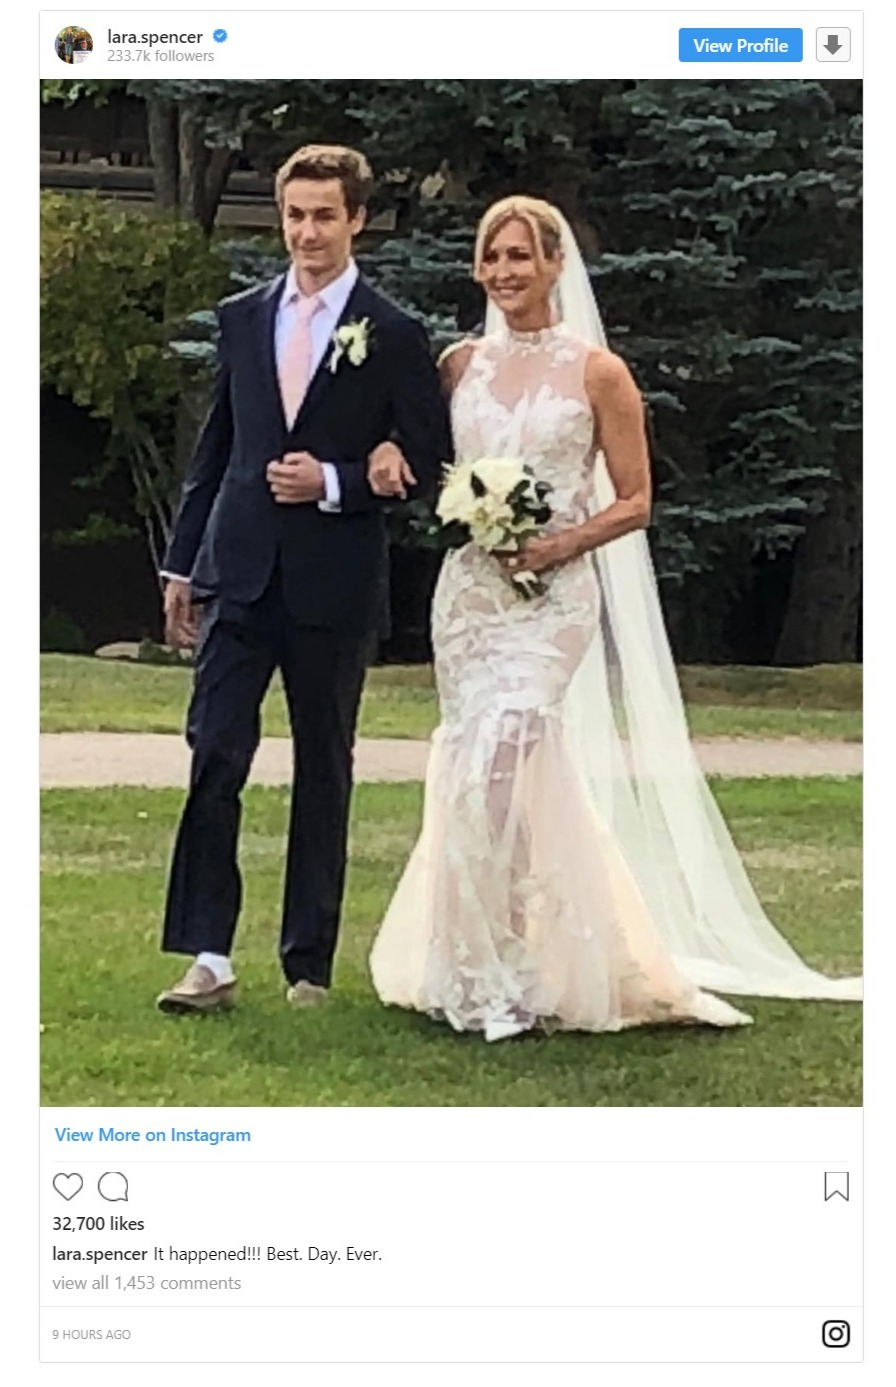 Lara Spencer shares a picture with her son, Duff on her Instagram on the occasion of her wedding. Her son is walking her down the aisle.